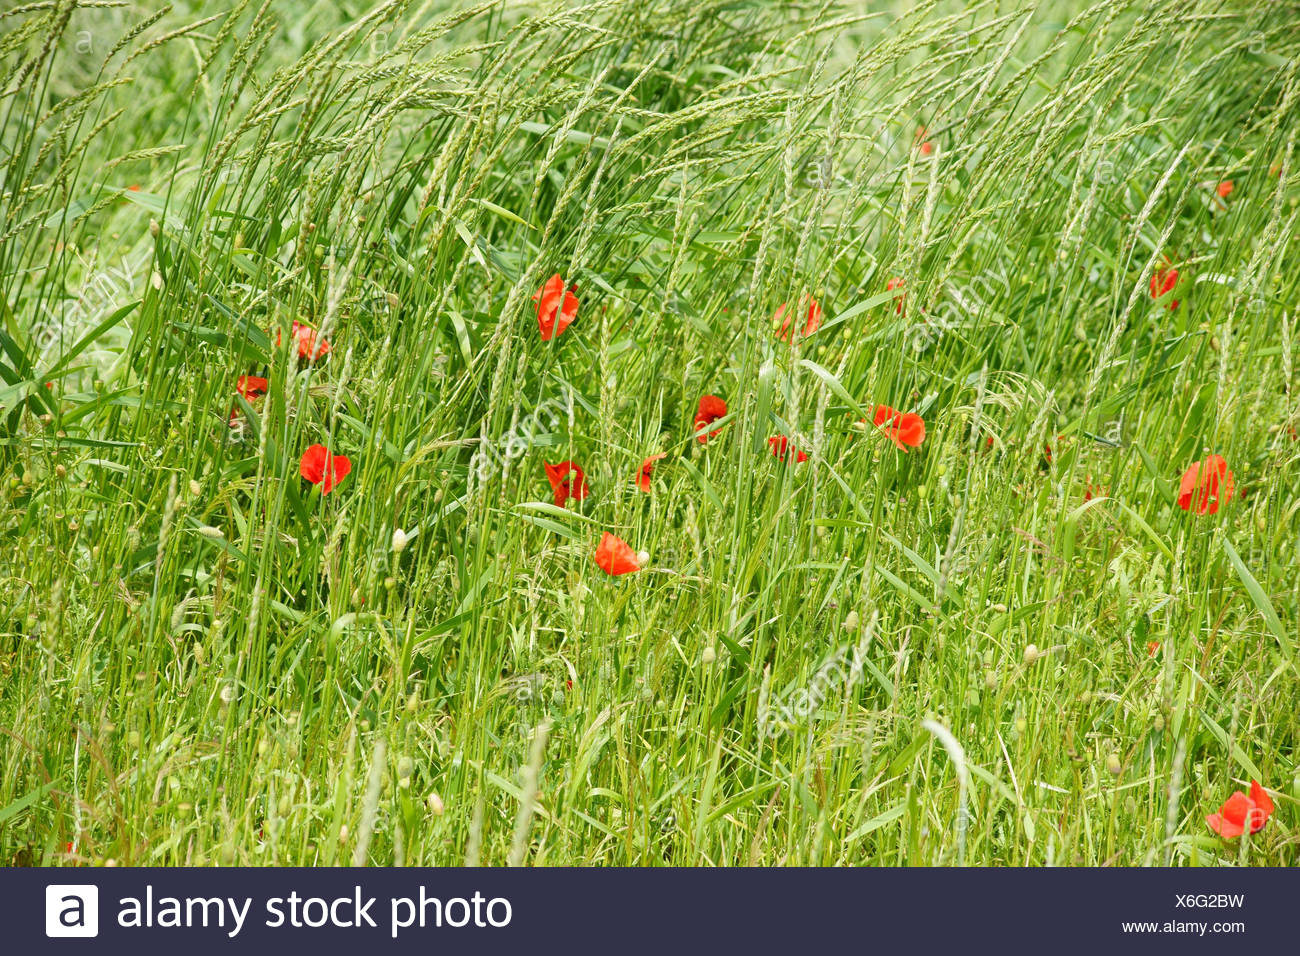 Single bright shining poppy blossom on the edge of a field, in the midst of grass. - Stock Image